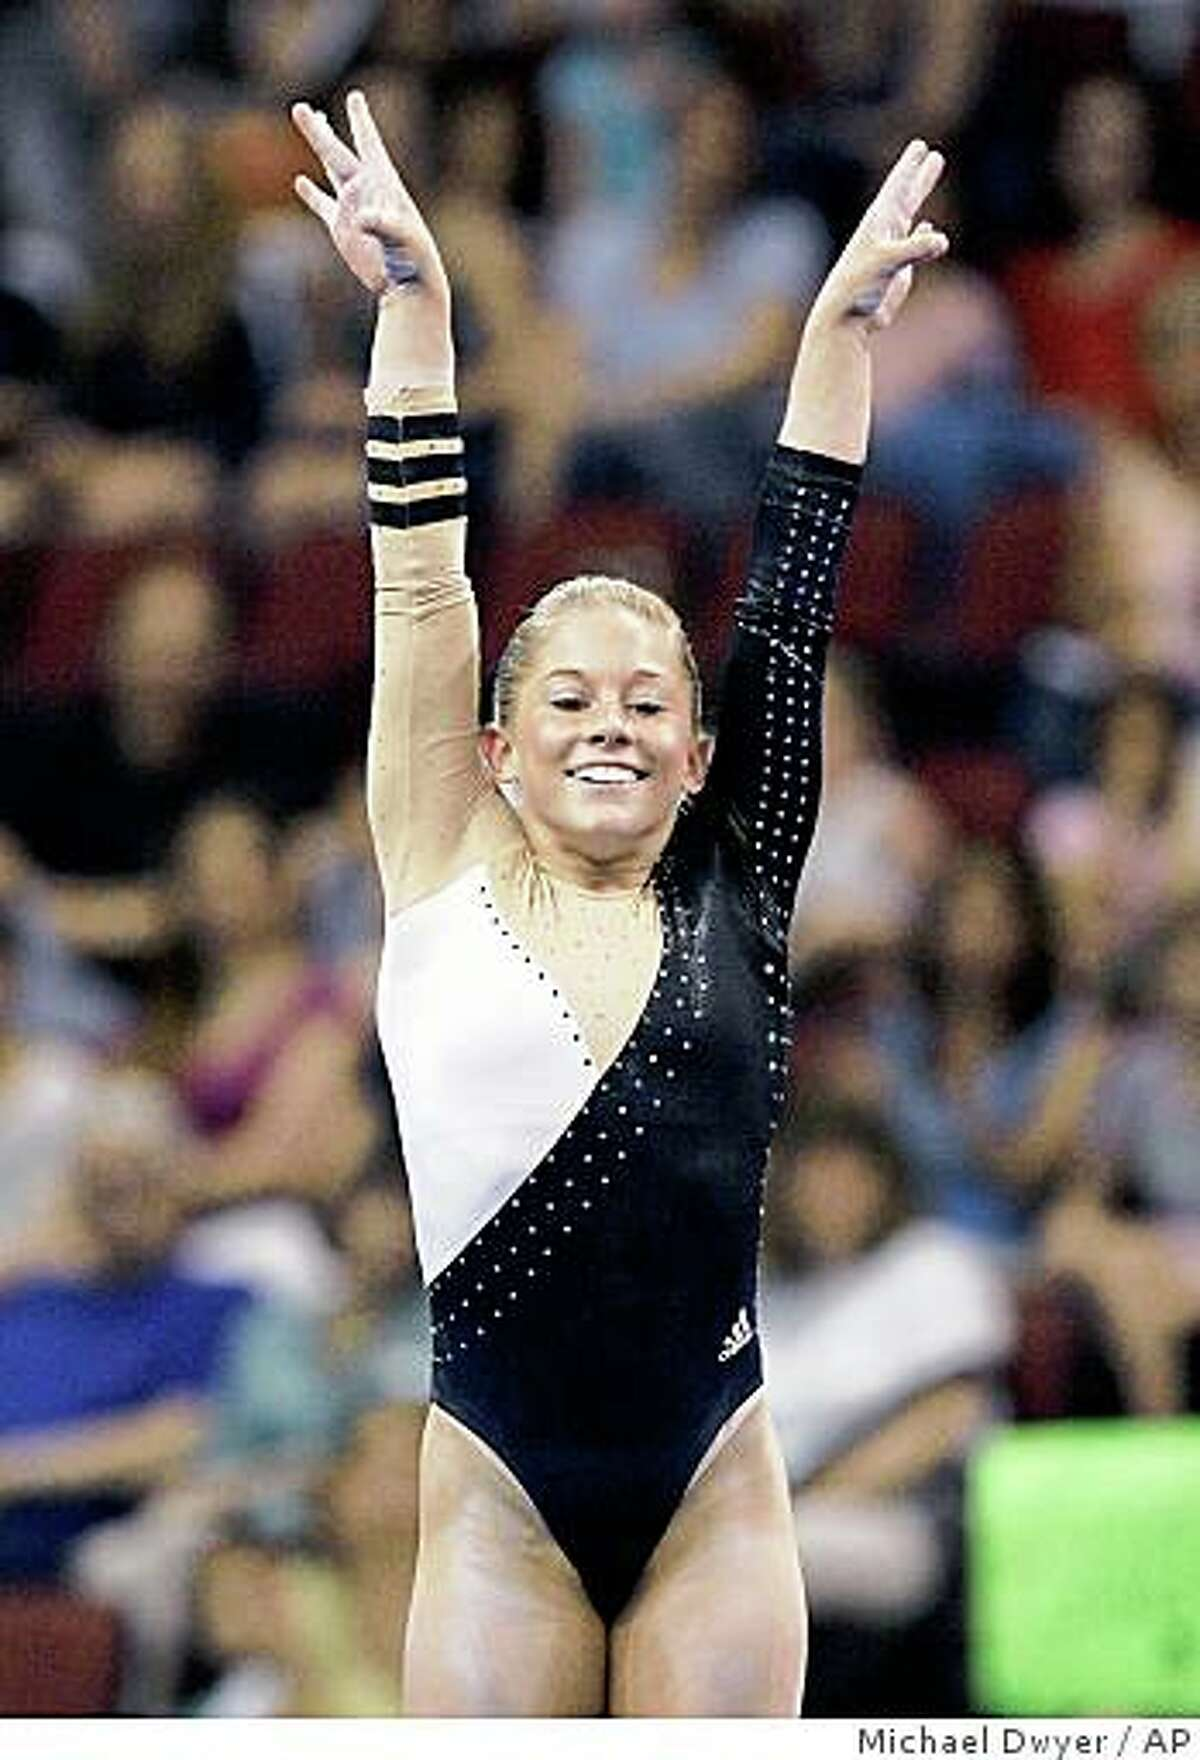 Shawn Johnson raises her arms after finishing her floor routine at the U.S. Gymnastics Championships, Saturday, June 7, 2008, in Boston. (AP Photo/Michael Dwyer)